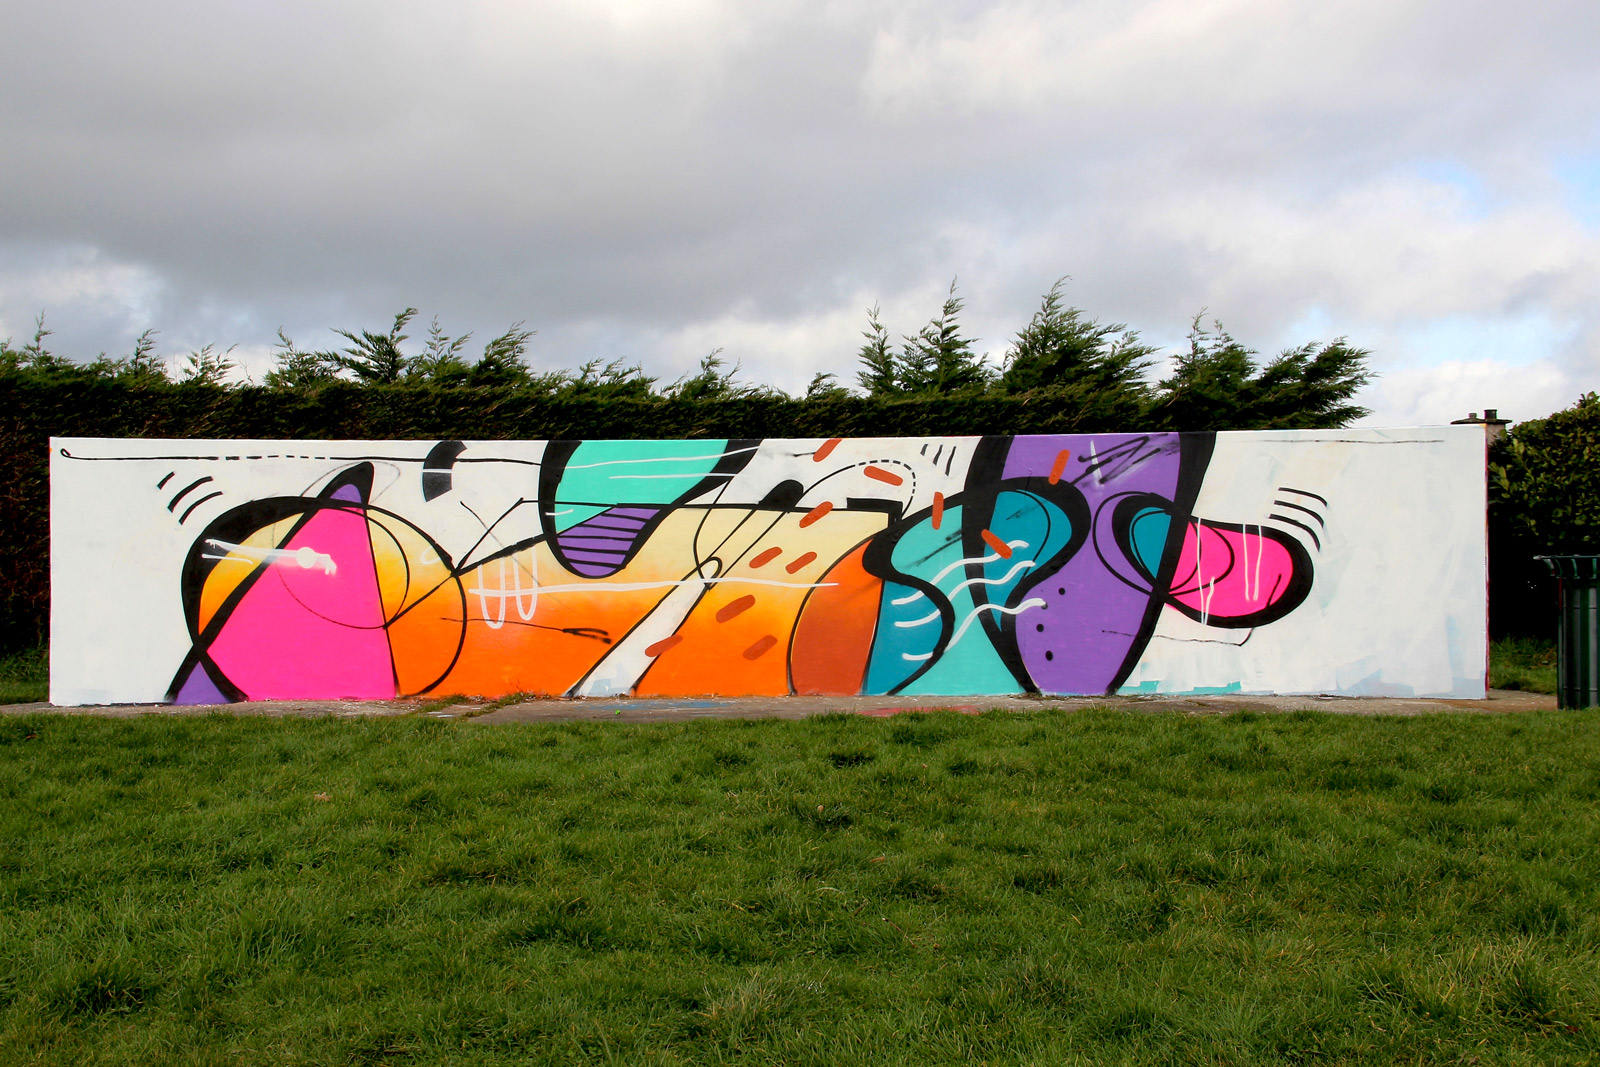 callington-cornwall-abstract-street-art-mural